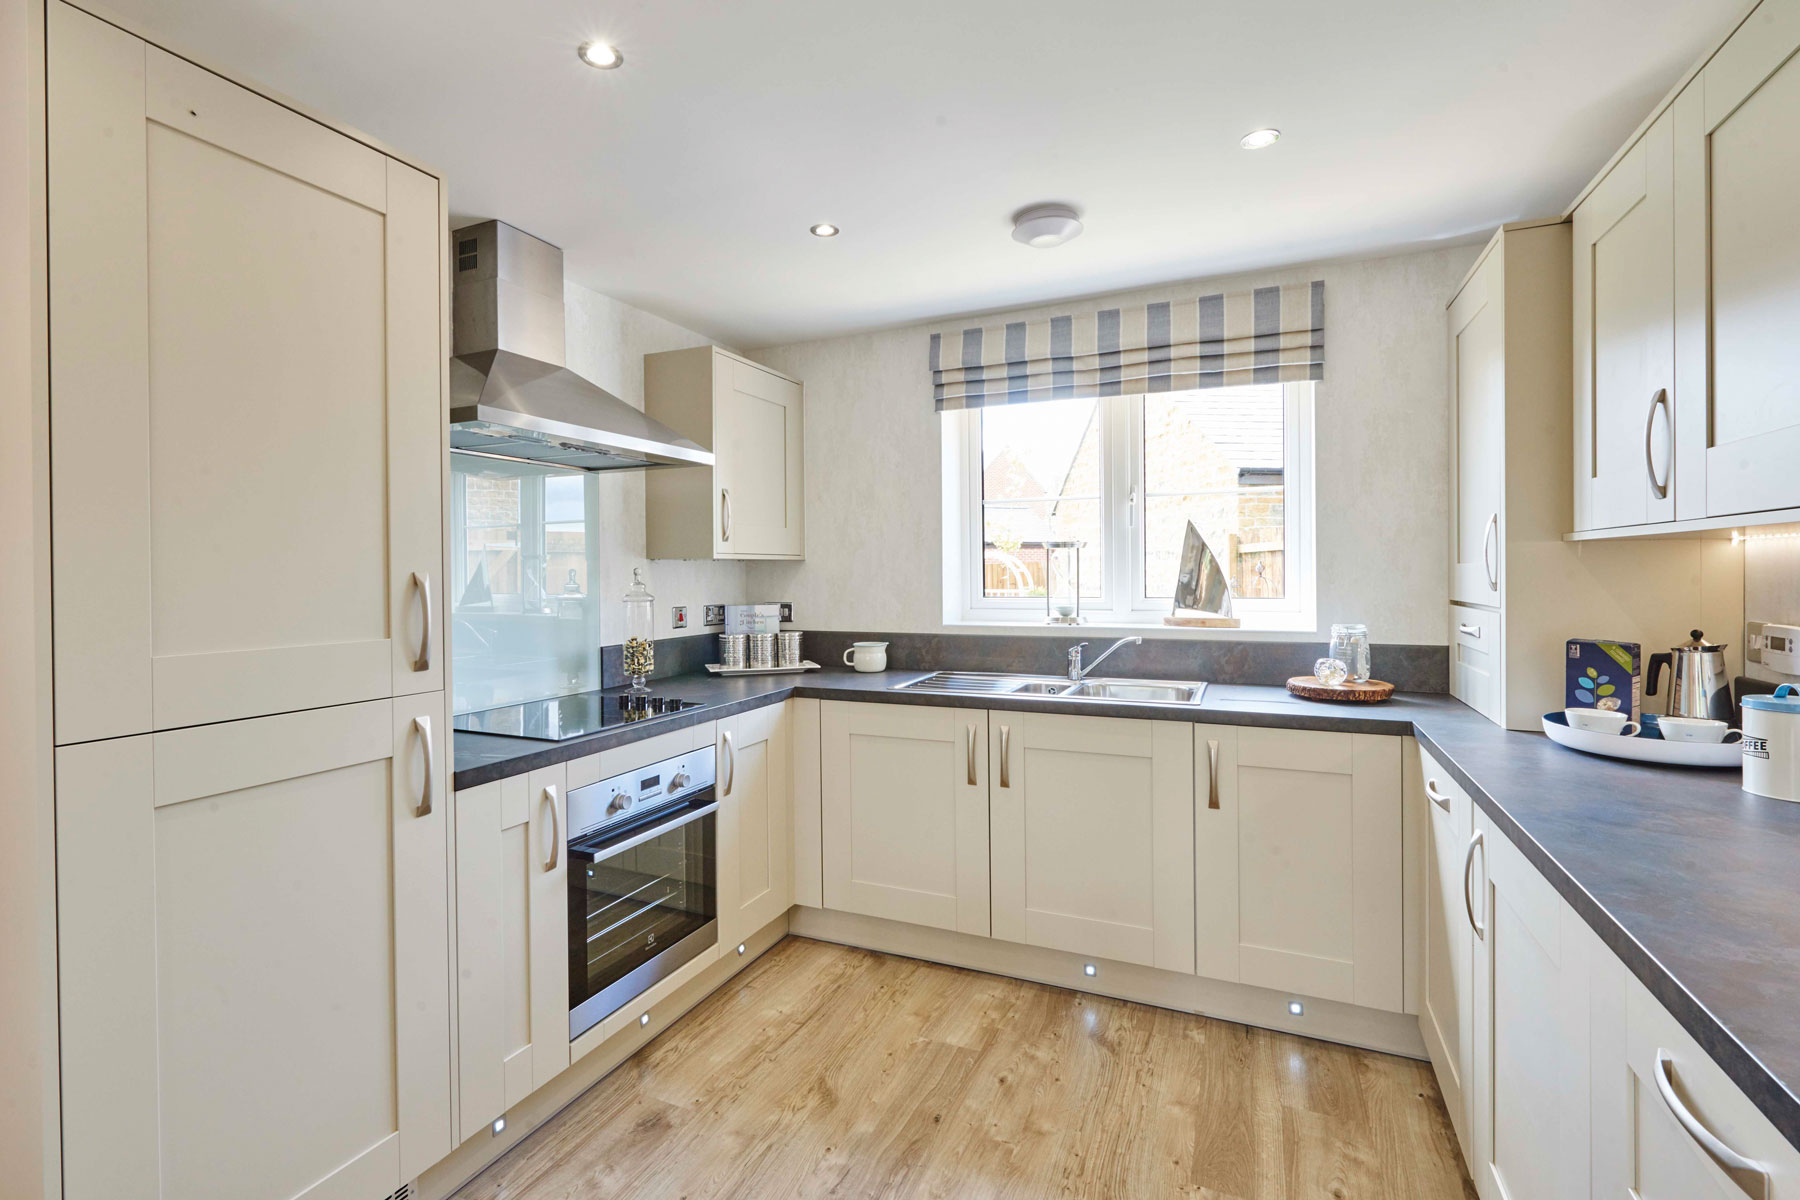 TW Exeter - Chy An Dowr - Yewdale example kitchen